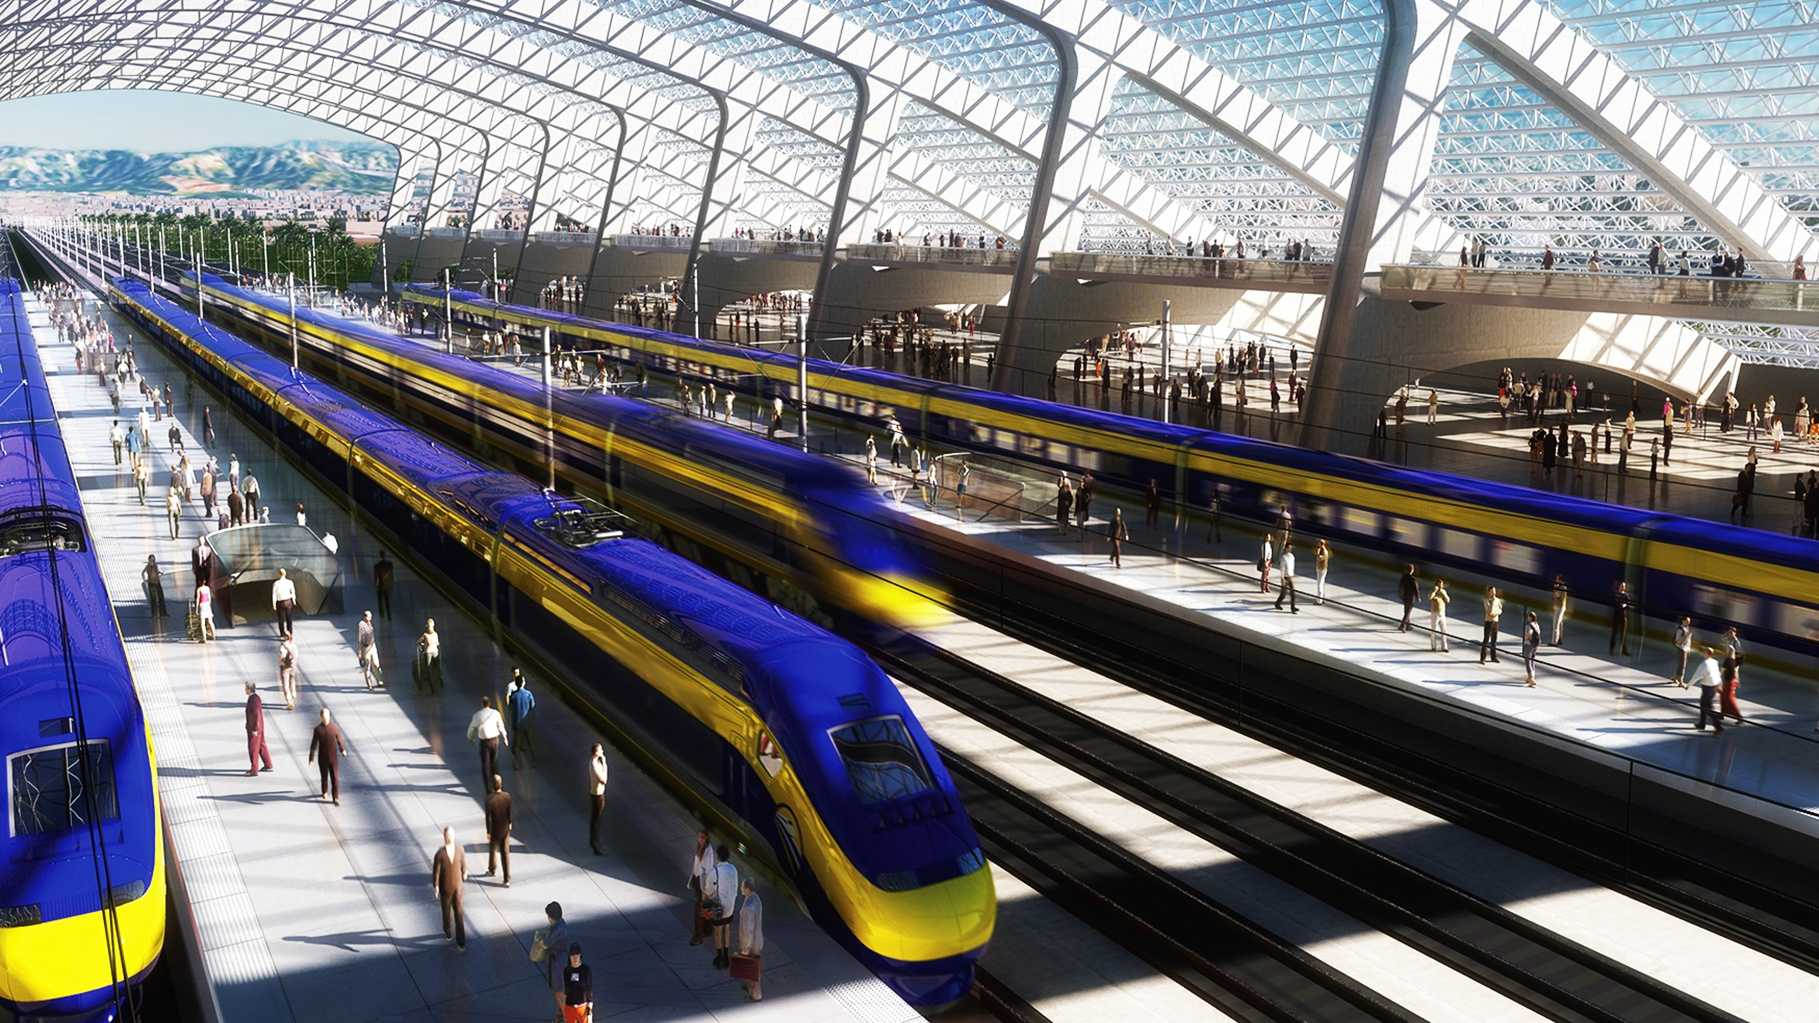 Renderings from the California High-Speed Rail Authority show how a rail platform would look.